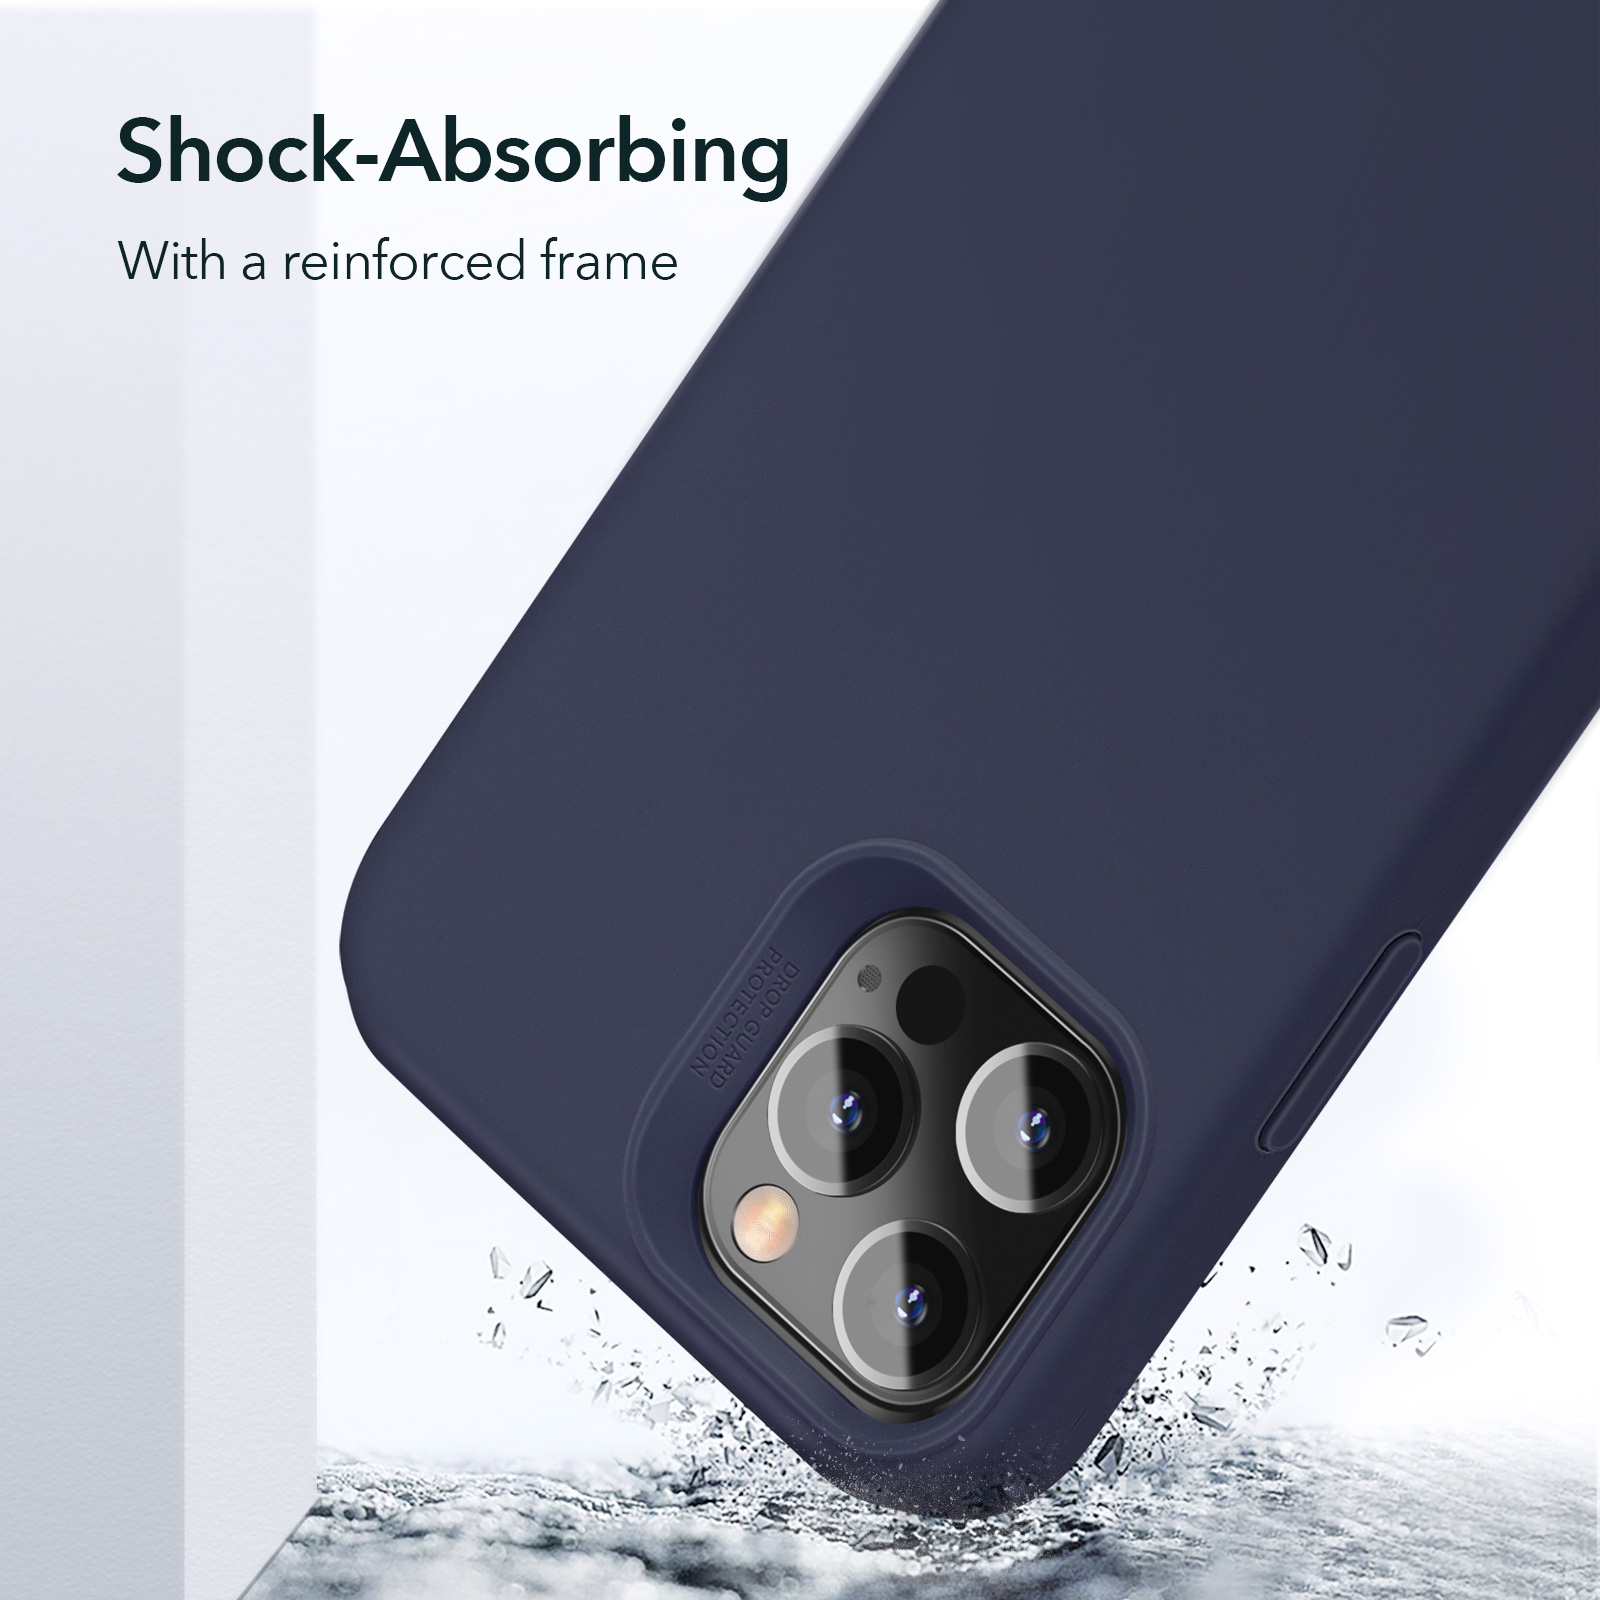 ESR Soft Silky silicone case with a reinforced frame for iPhone 12 Pro Max